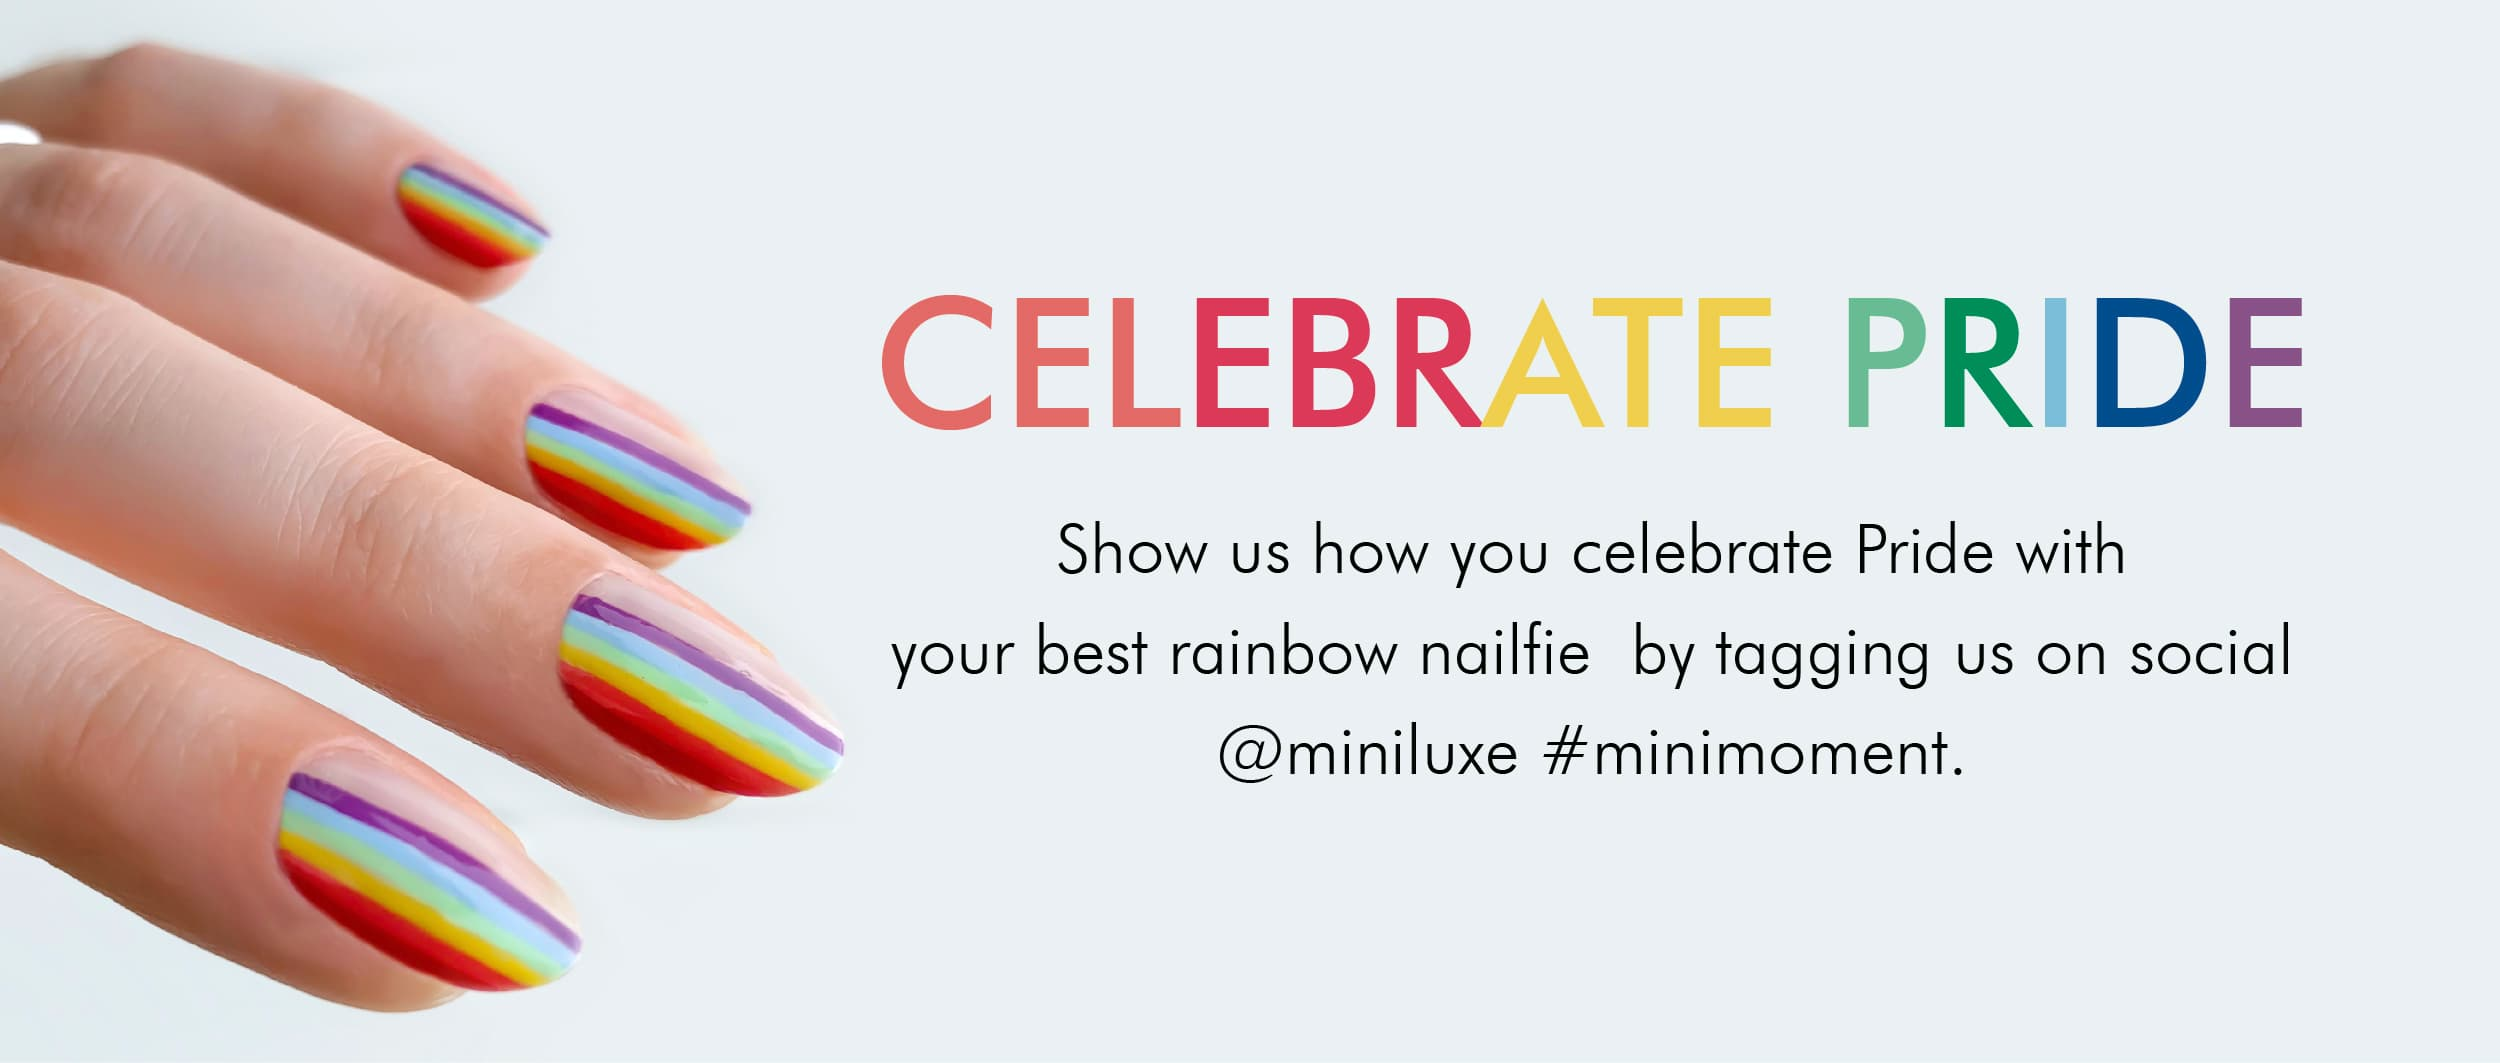 CELEBRATE PRIDE. Show us how you celebrate Pride with your best rainbow nailfie by tagging us on social @miniluxe #minimoment.